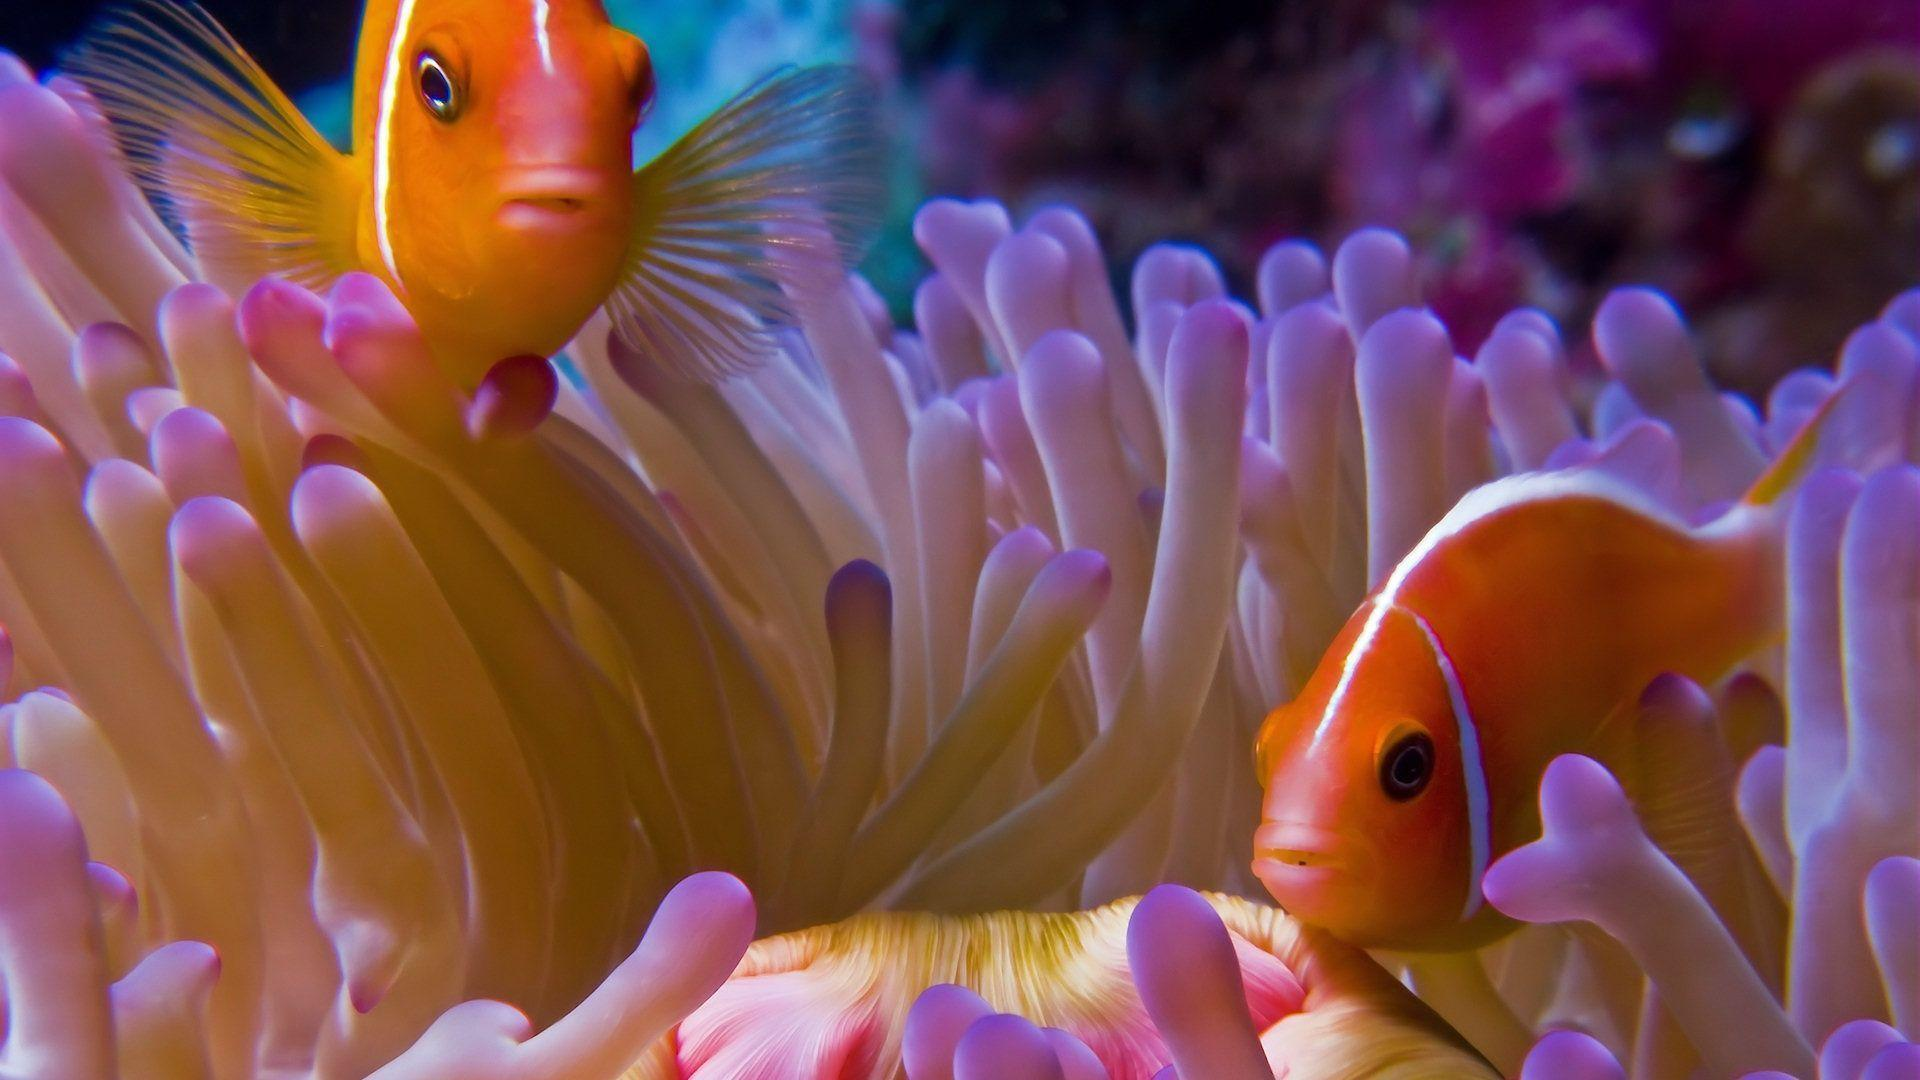 Fish Backgrounds Wallpaper Cave